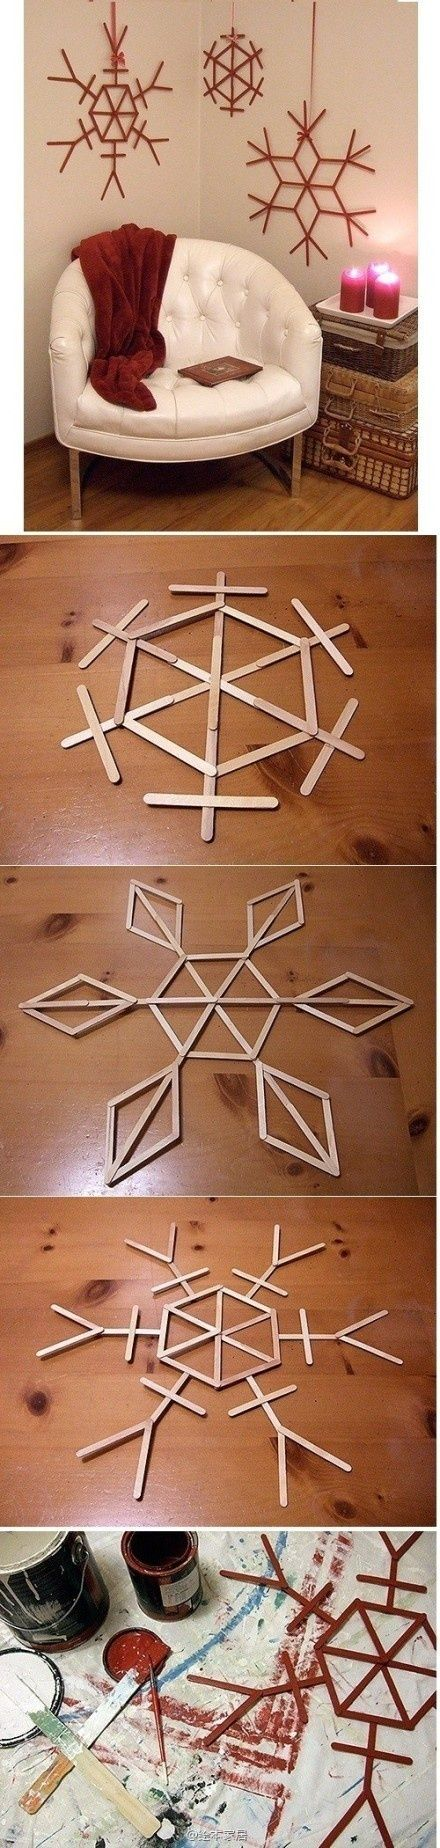 Popsicle stick snowflakes  I can do this!